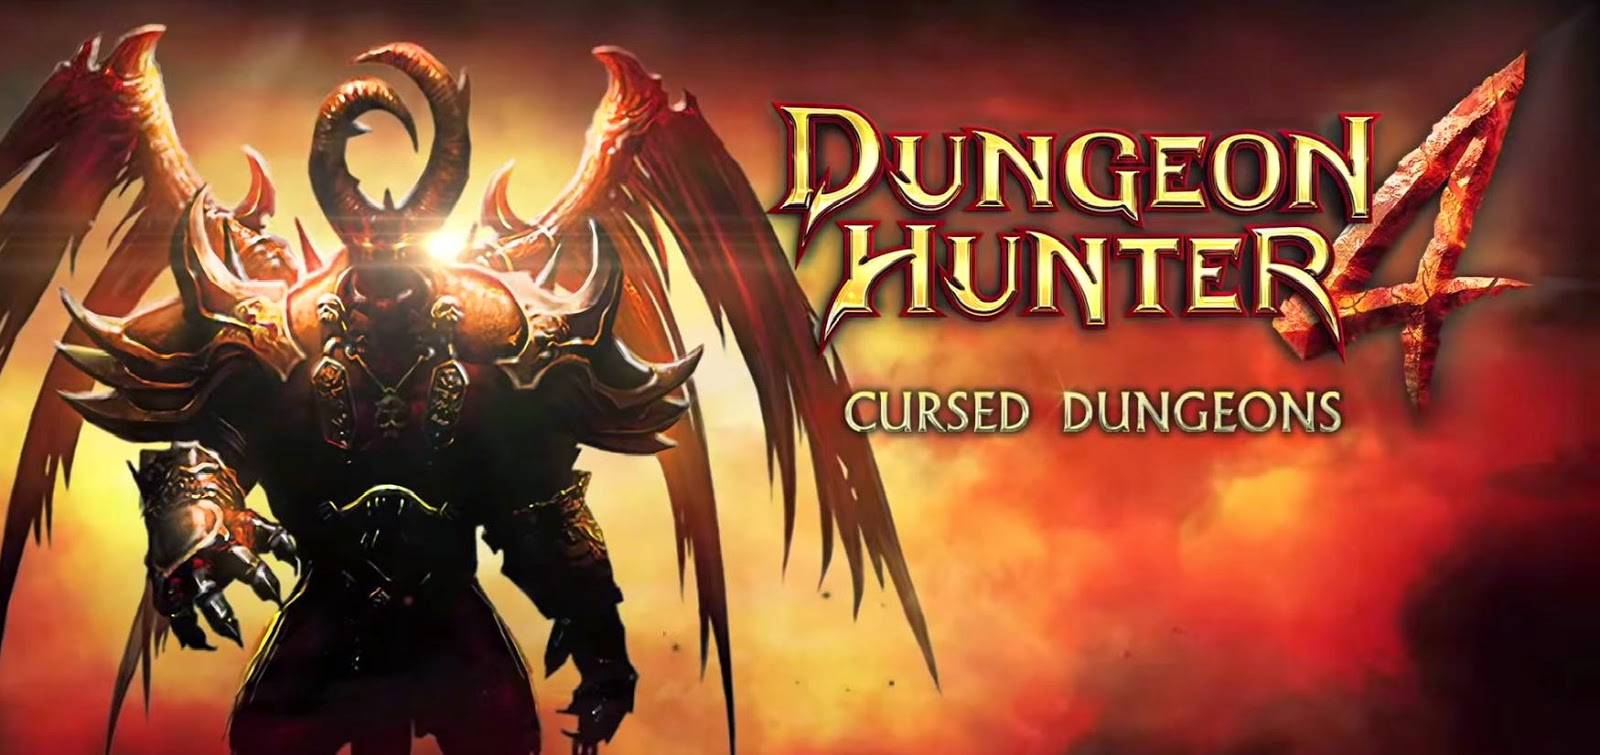 Dungeon Hunter 4 v1.6.0m [Mod Money] APK+DATA